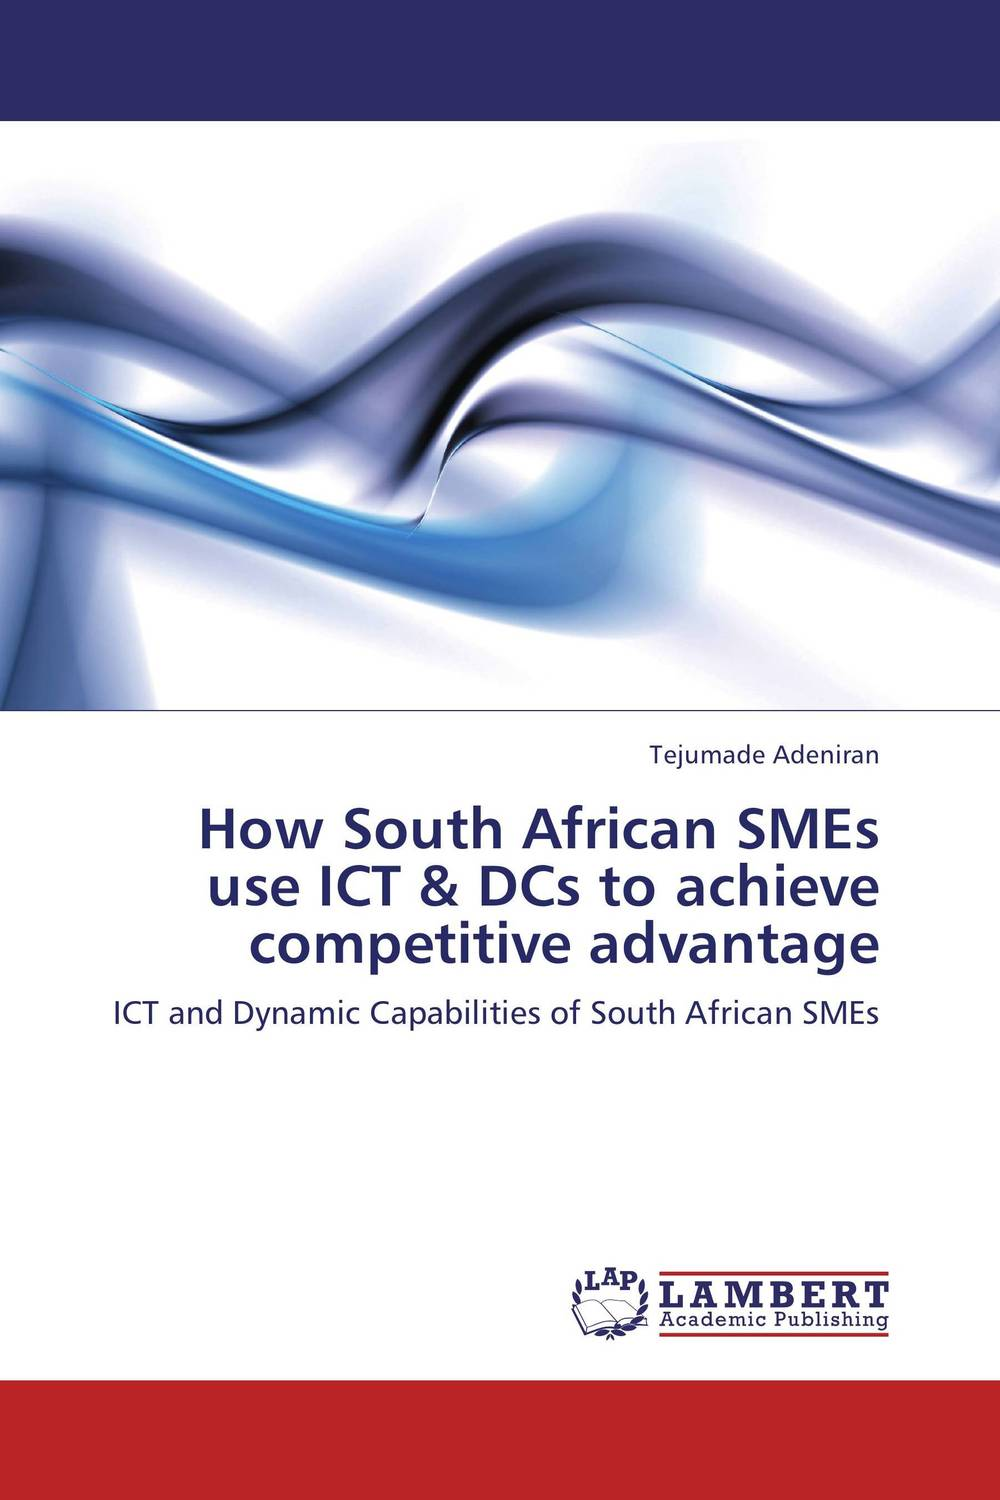 How South African SMEs use ICT & DCs to achieve competitive advantage косметичка south africa airlines south african airways south african airways